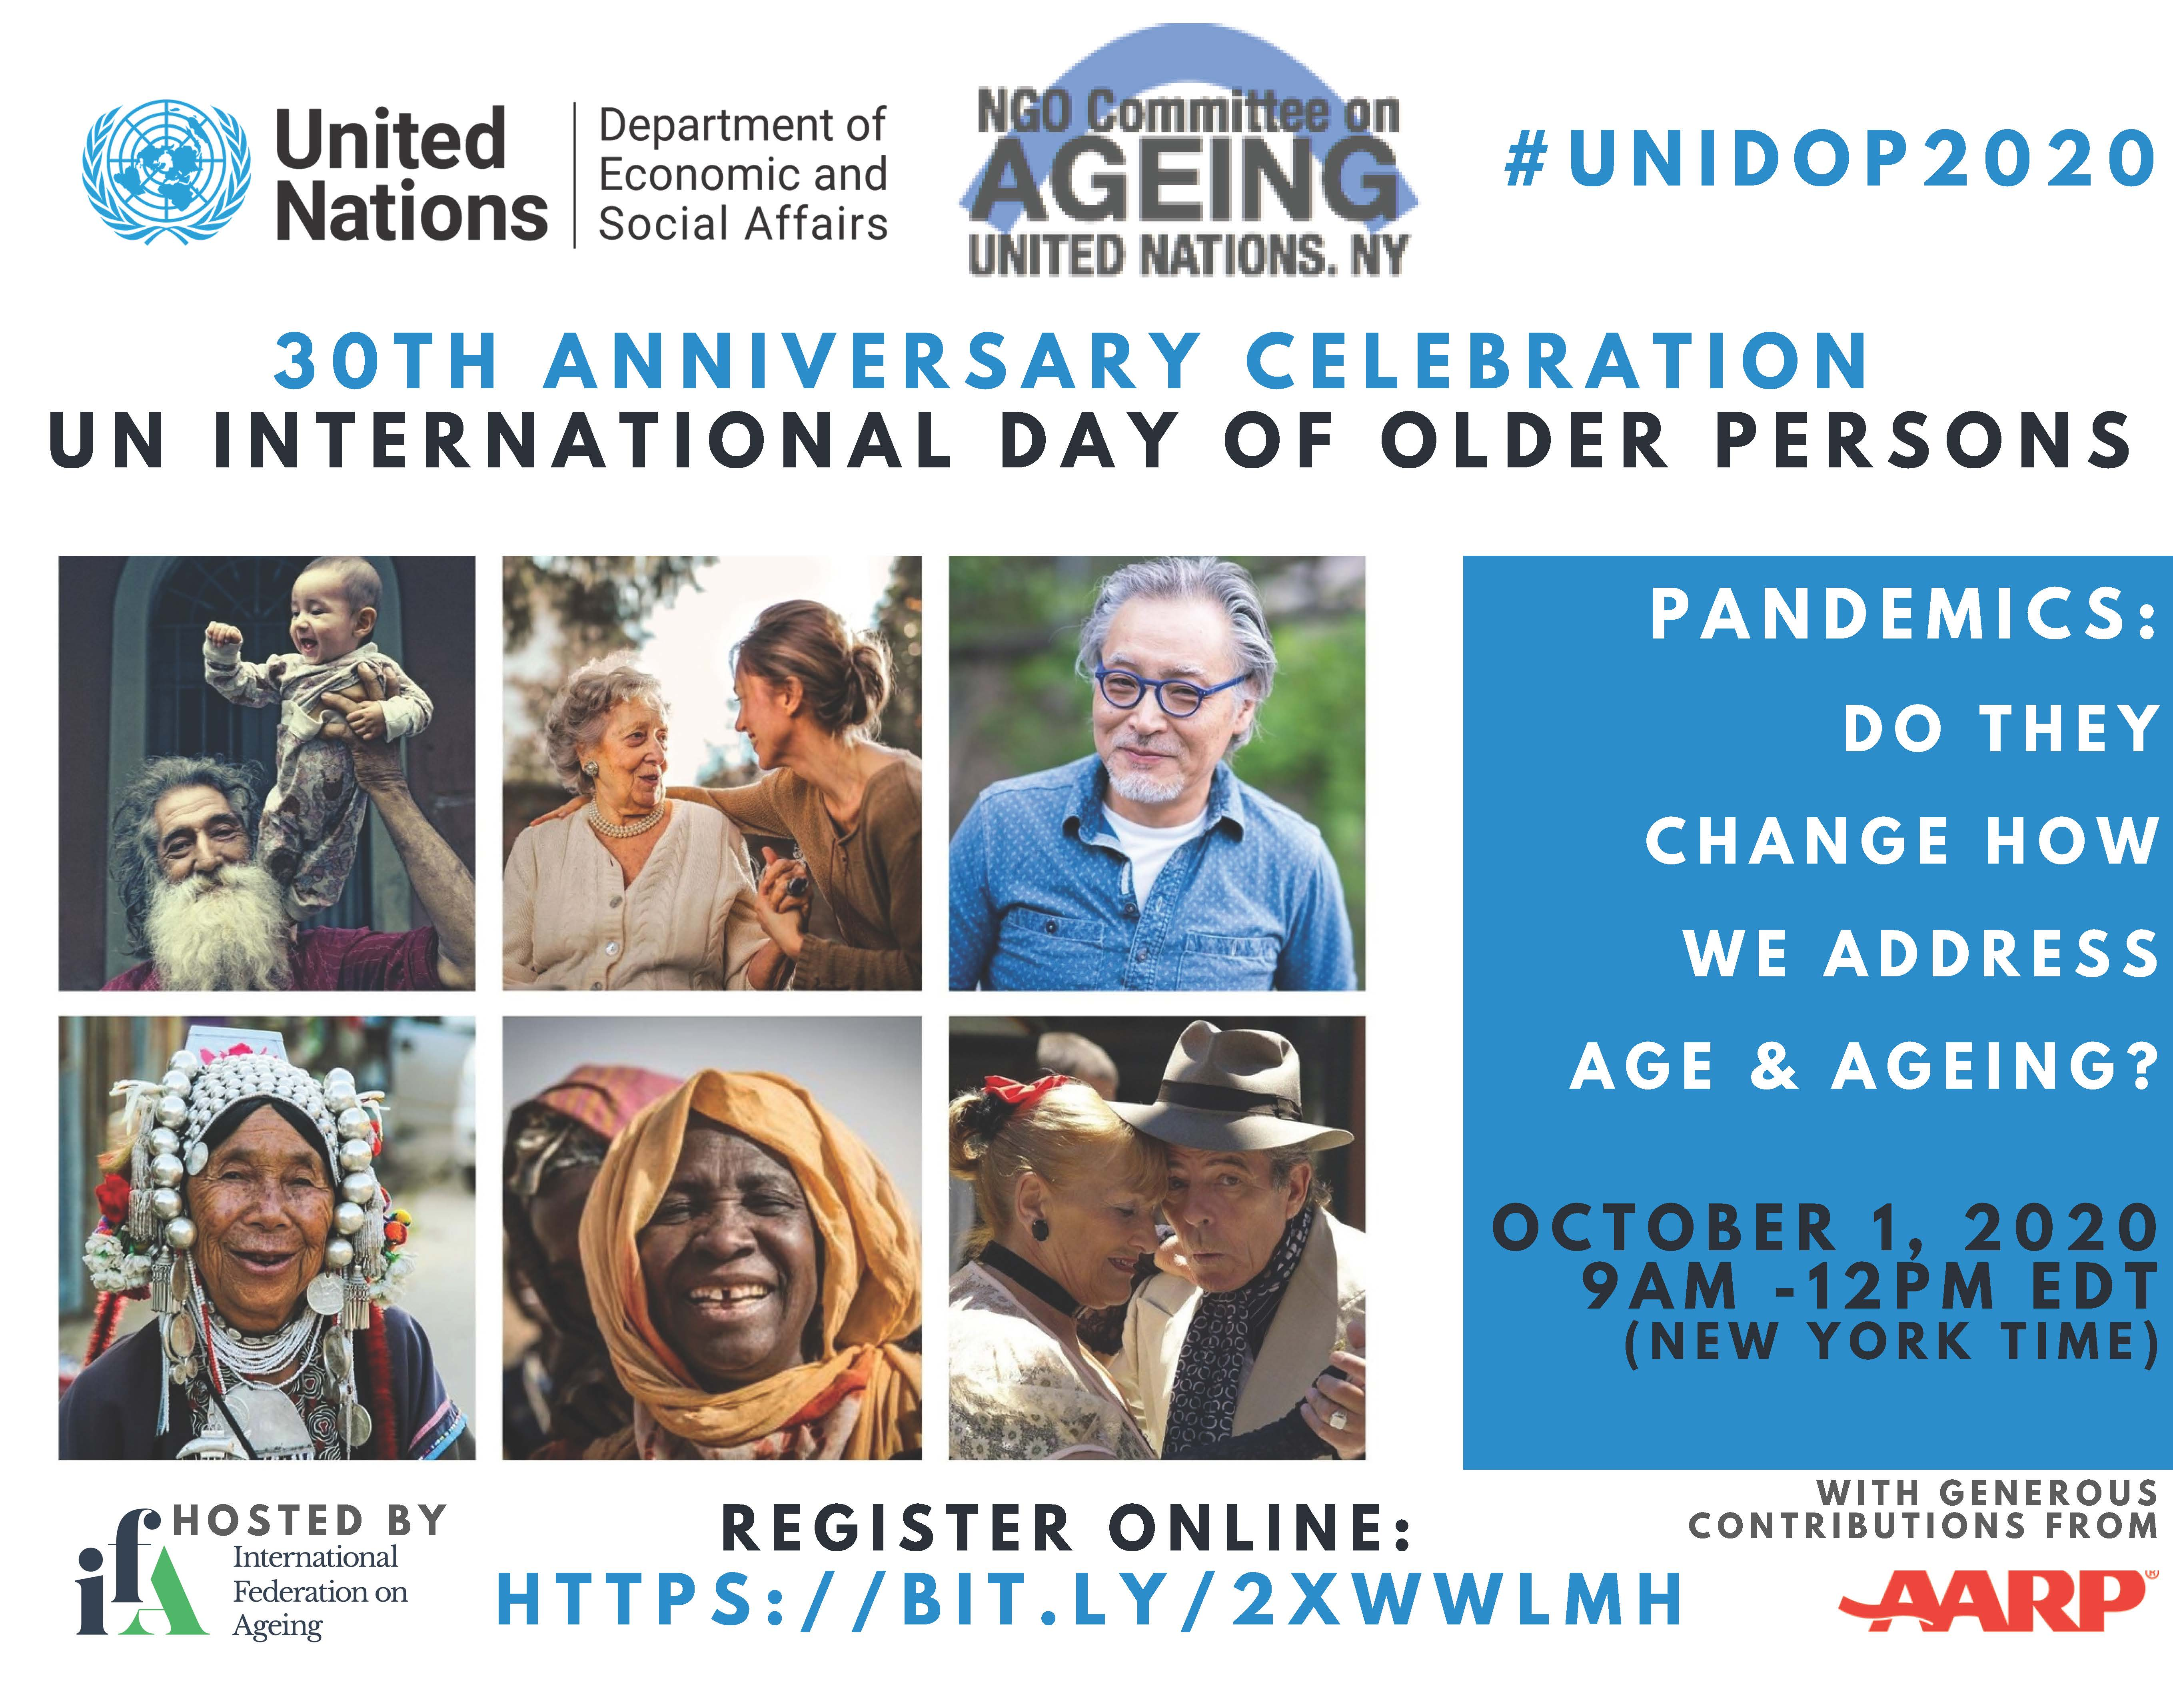 United Nations International Day of Older Persons (UNIDOP)